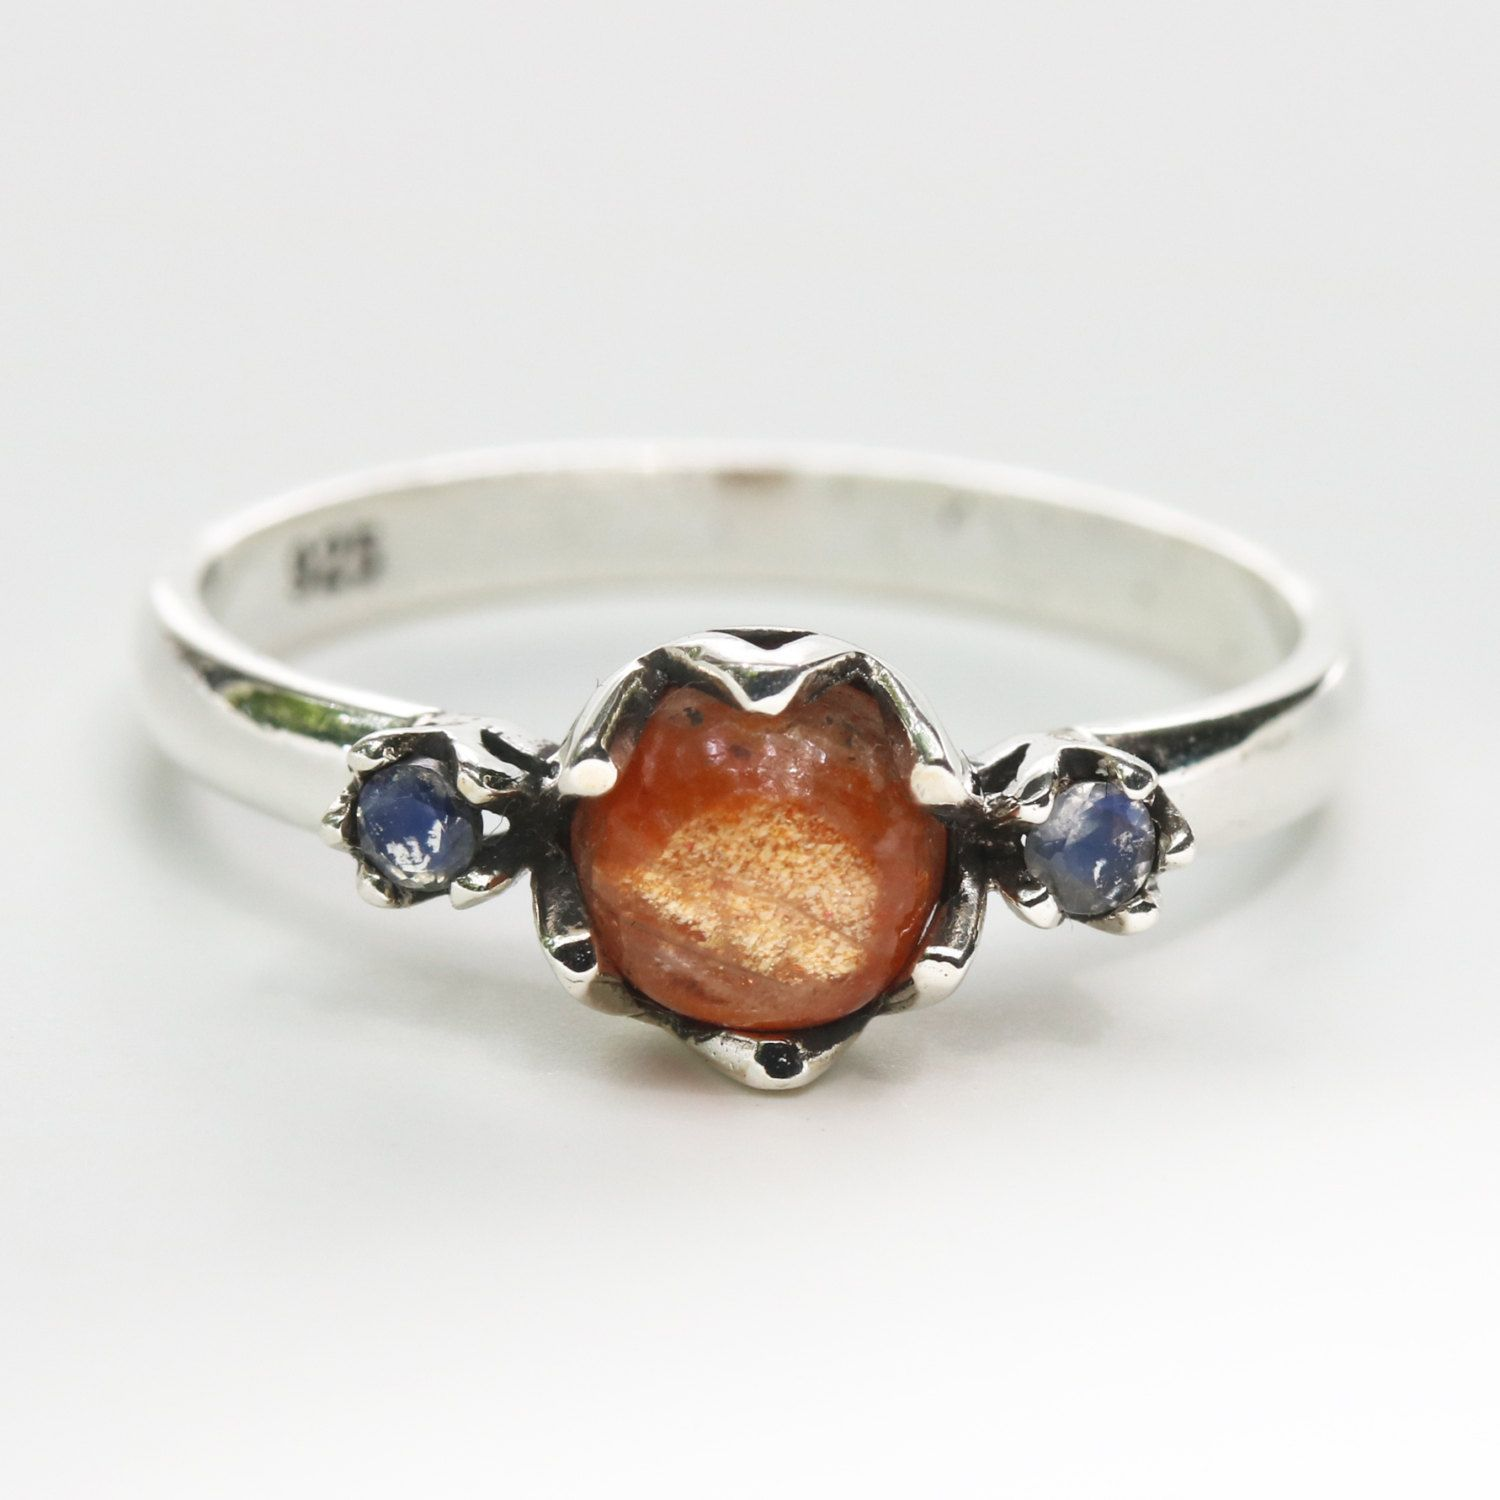 of jewelry portland diamond elegant wedding oregon or rings sunstone sun non stone engagement